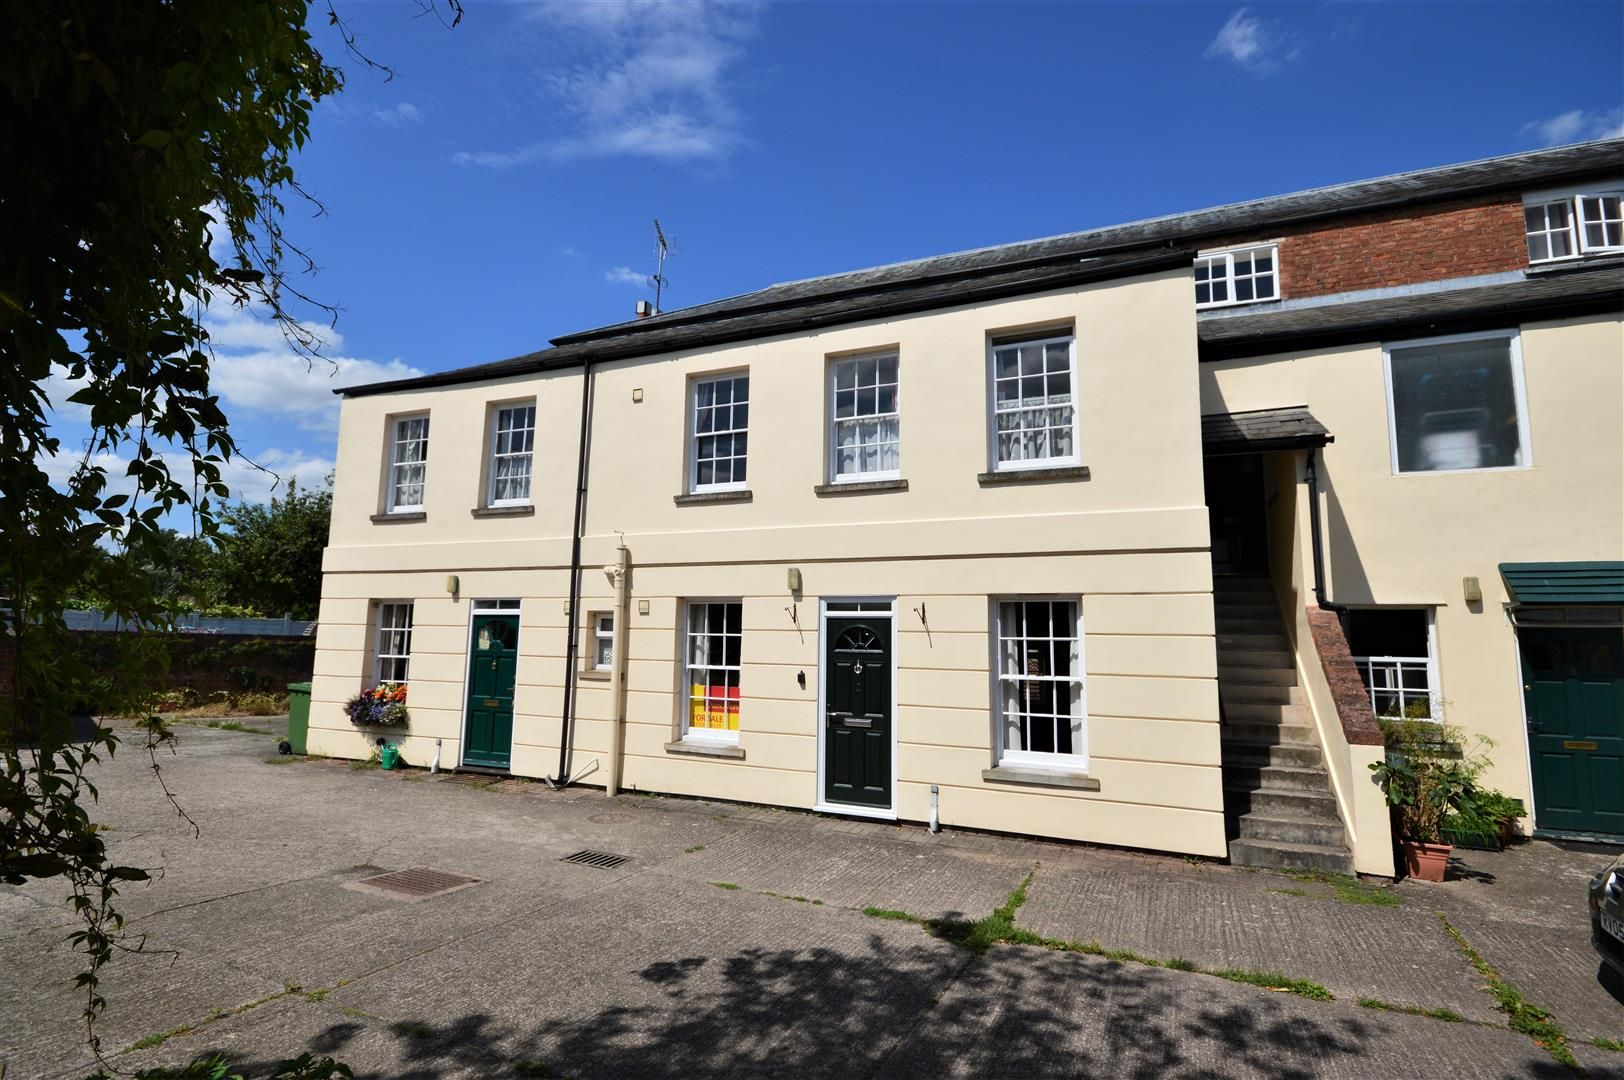 1 bed flat for sale in Leominster  - Property Image 1